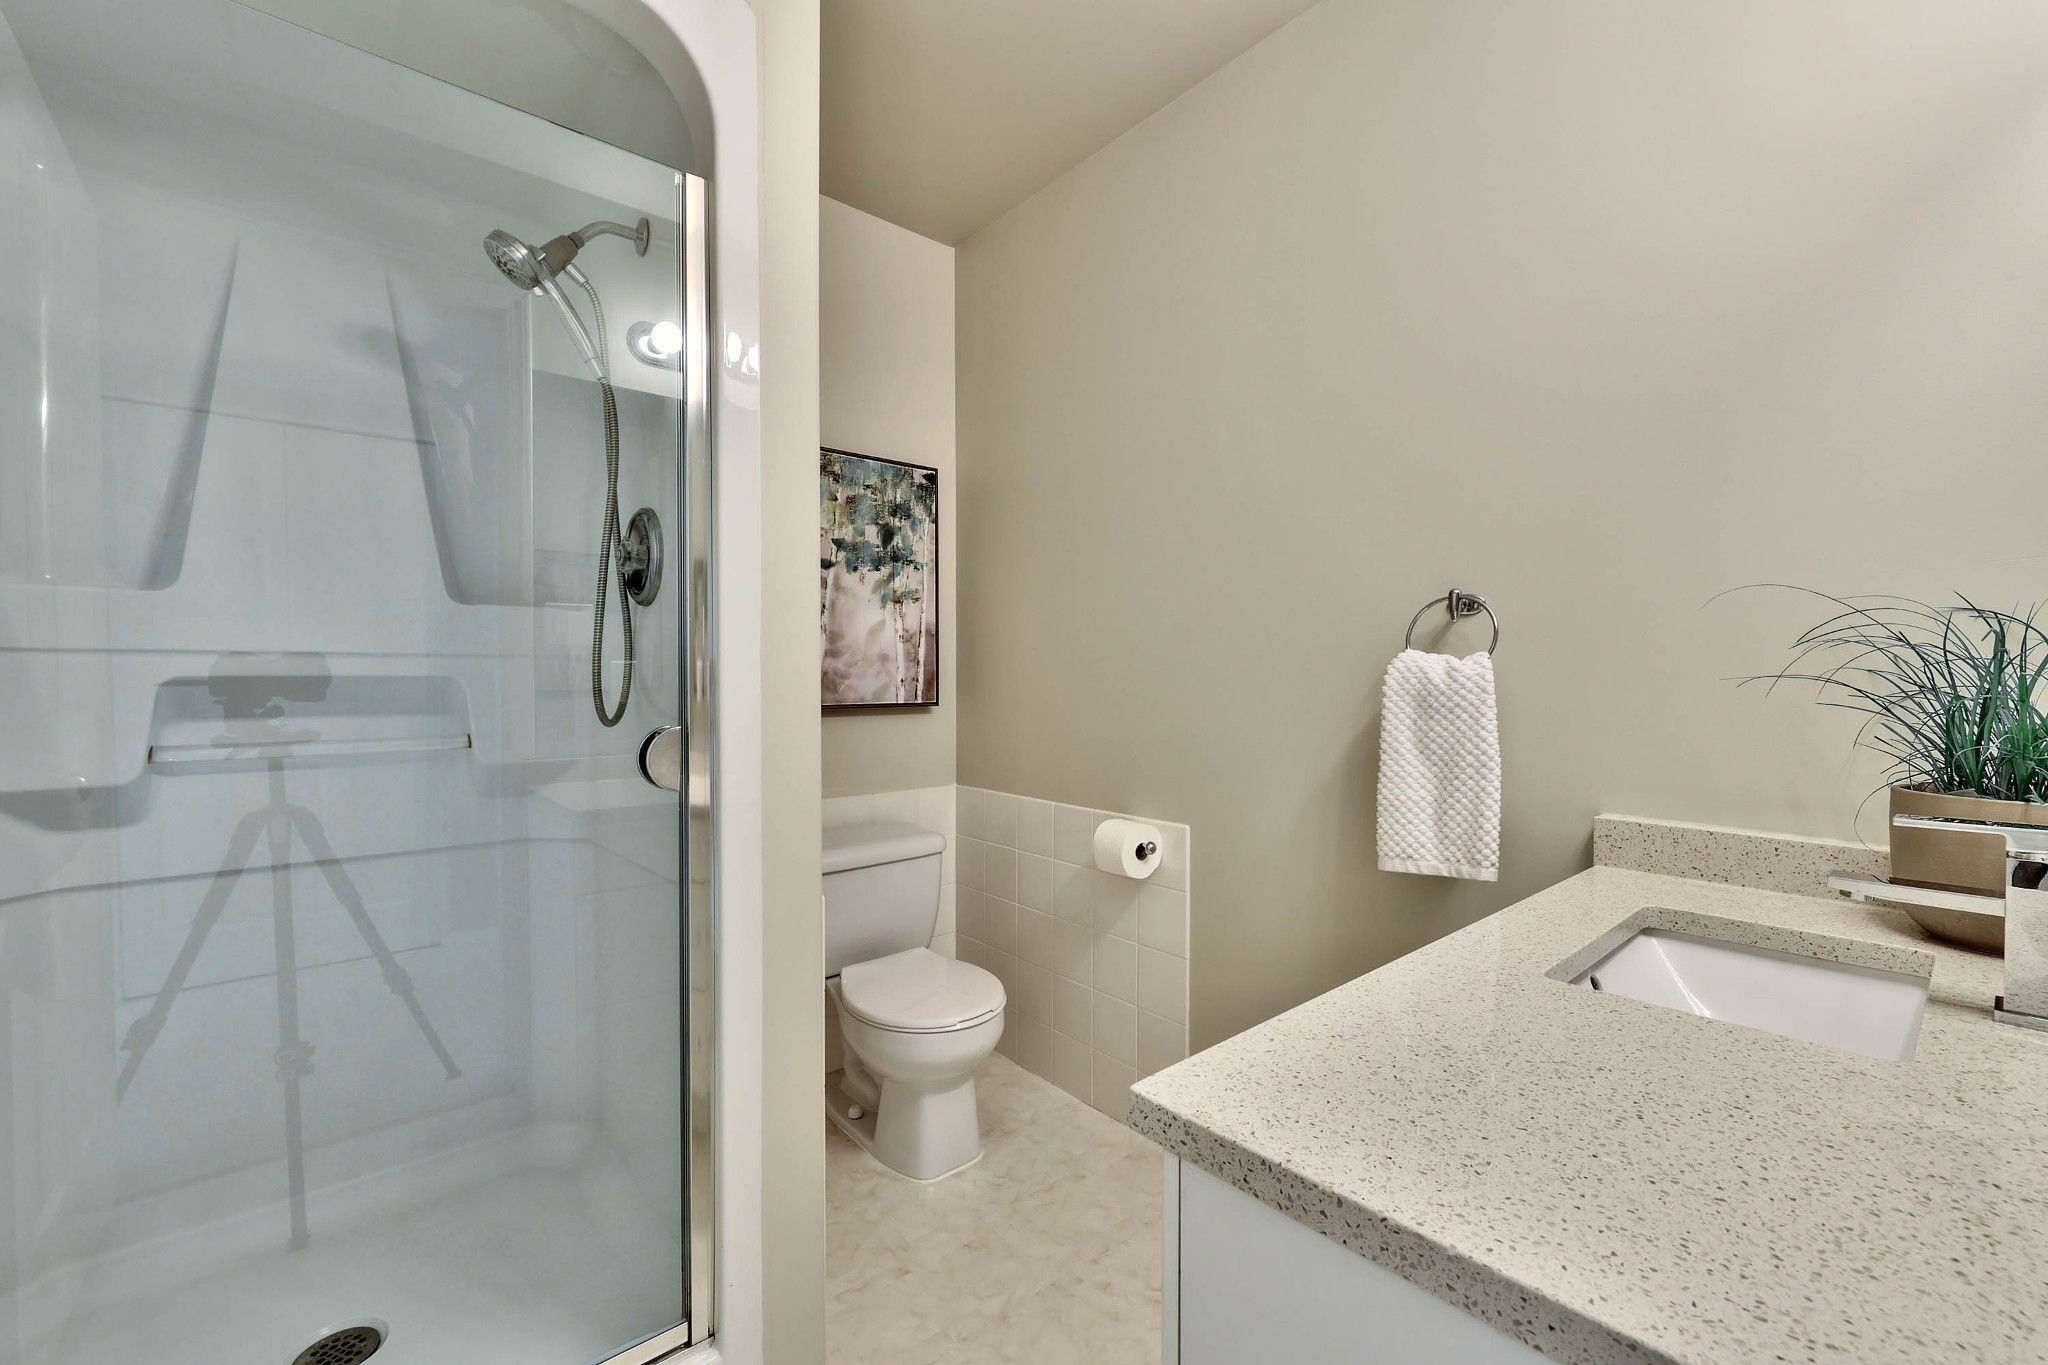 Photo 37: Photos: 3299 E Shuswap Road in Kamloops: South Thompson Valley House for sale : MLS®# 162162